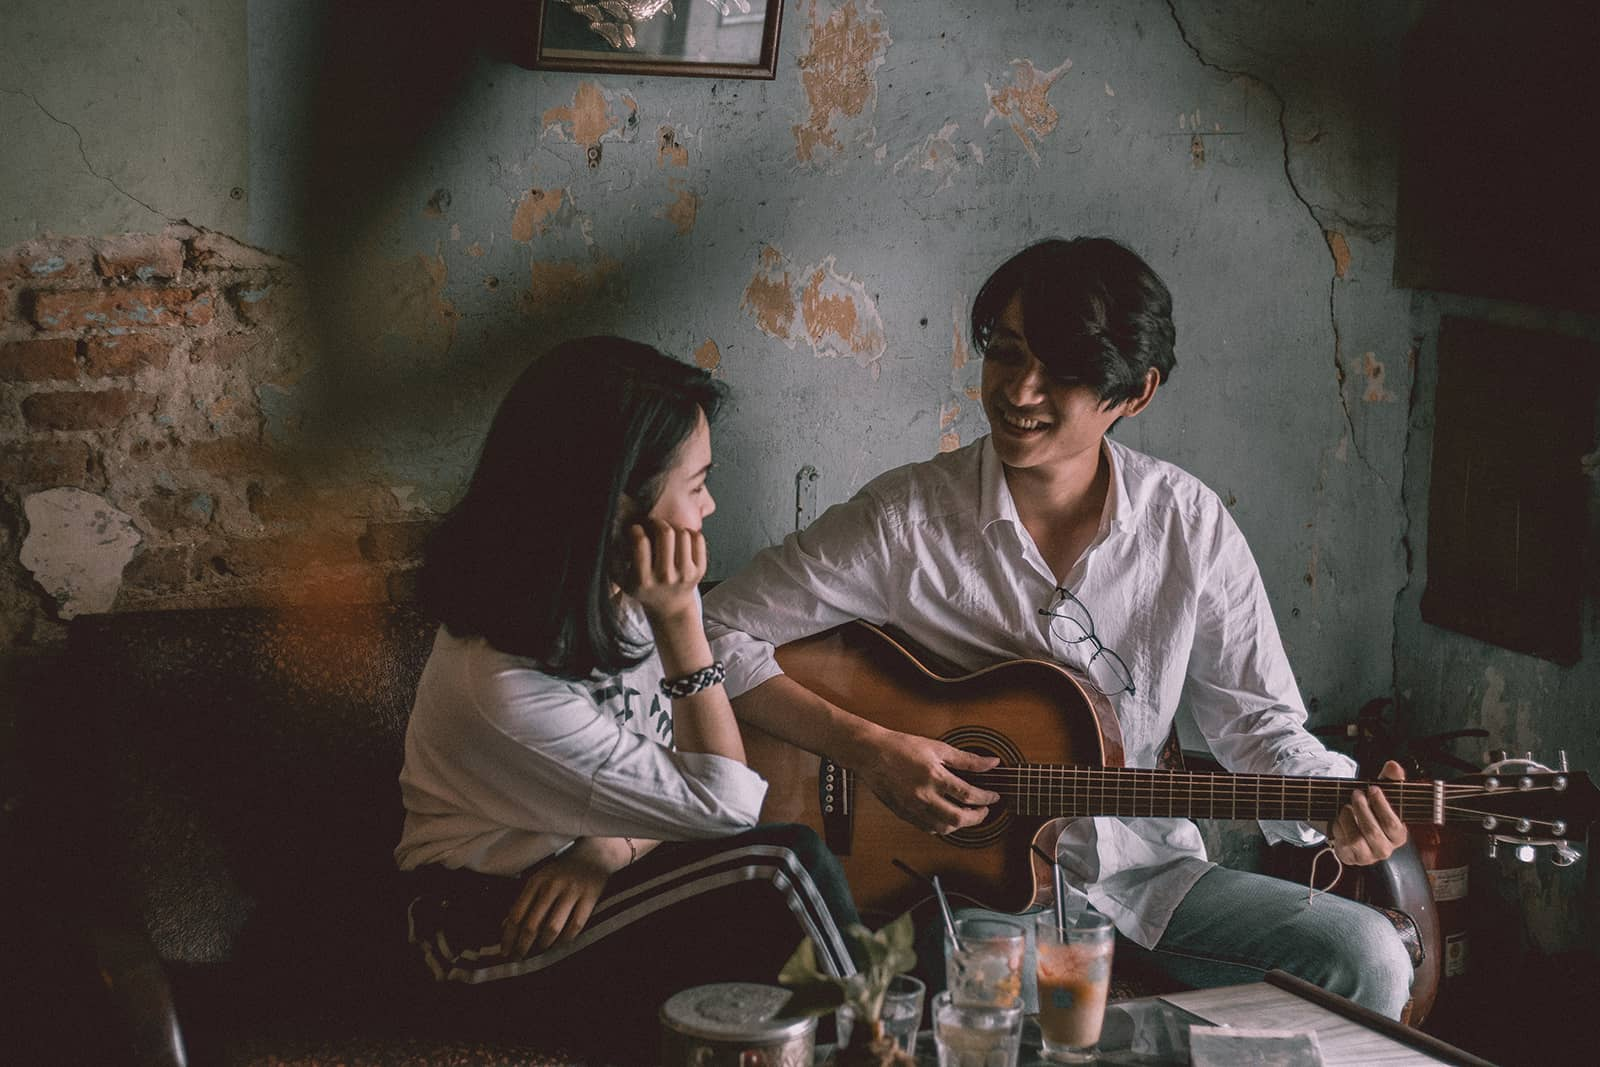 man playing guitar to a smiling woman while sitting together on the couch